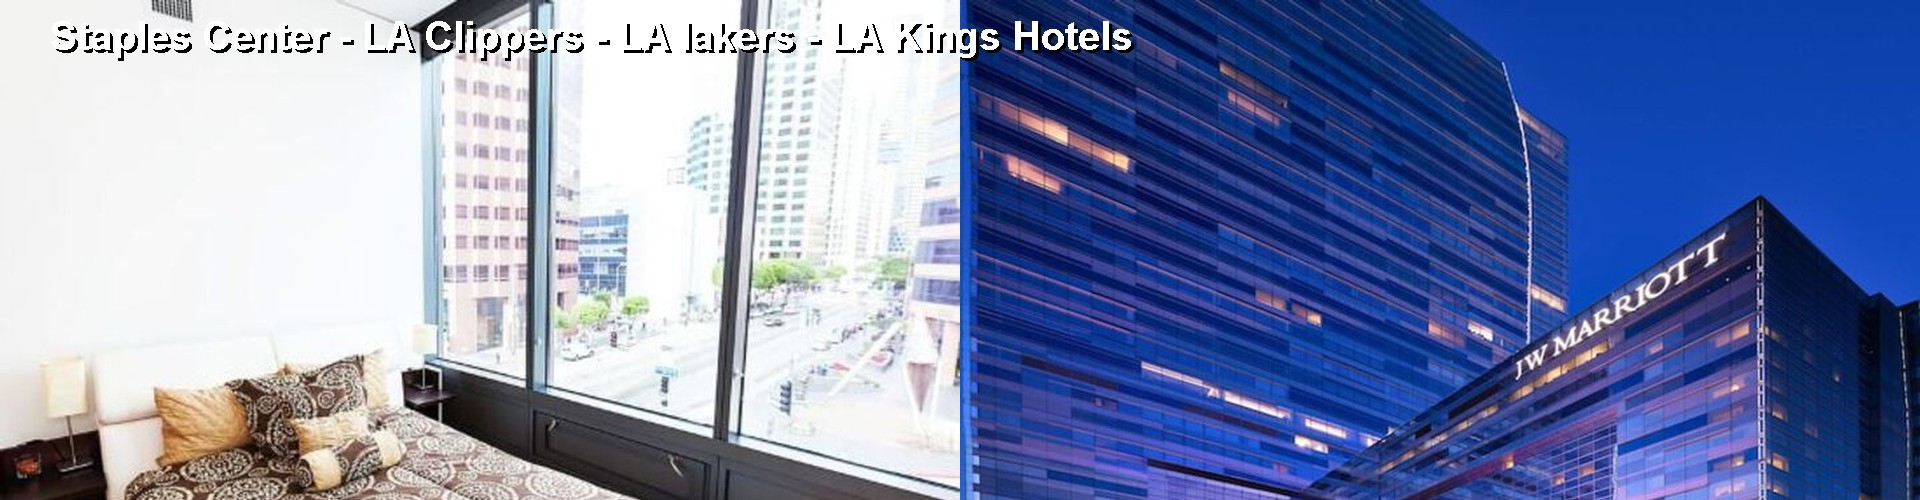 5 Best Hotels near Staples Center - LA Clippers - LA lakers - LA Kings